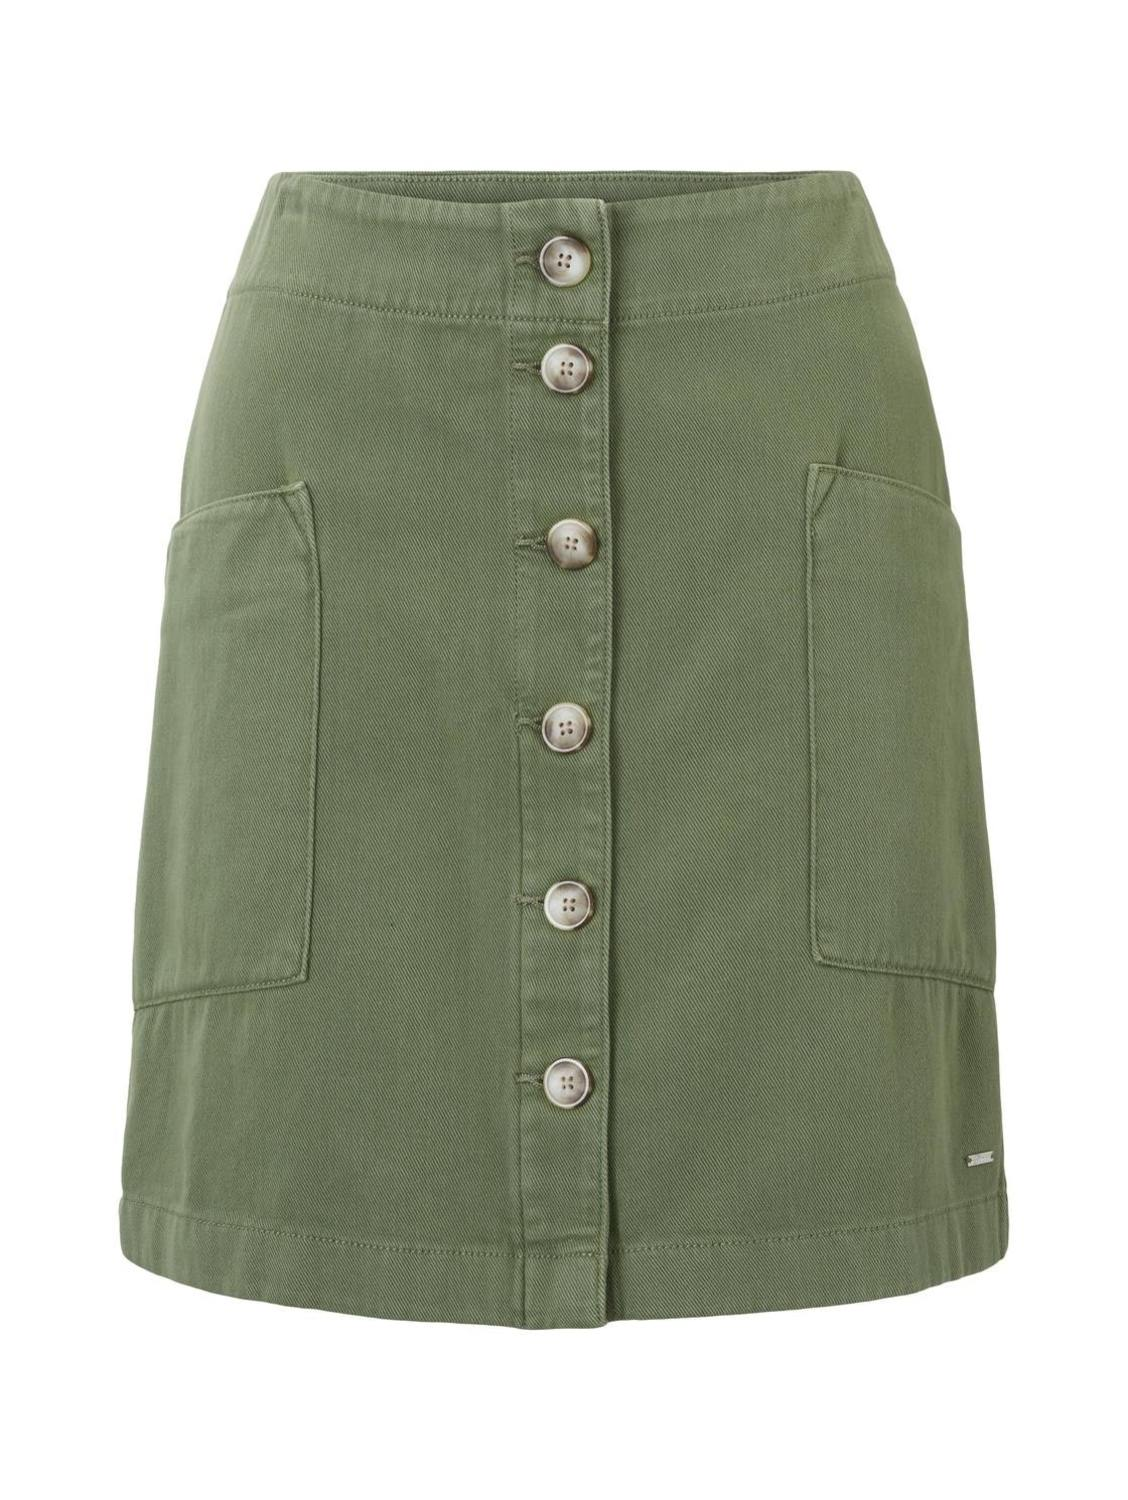 utility skirt with pockets